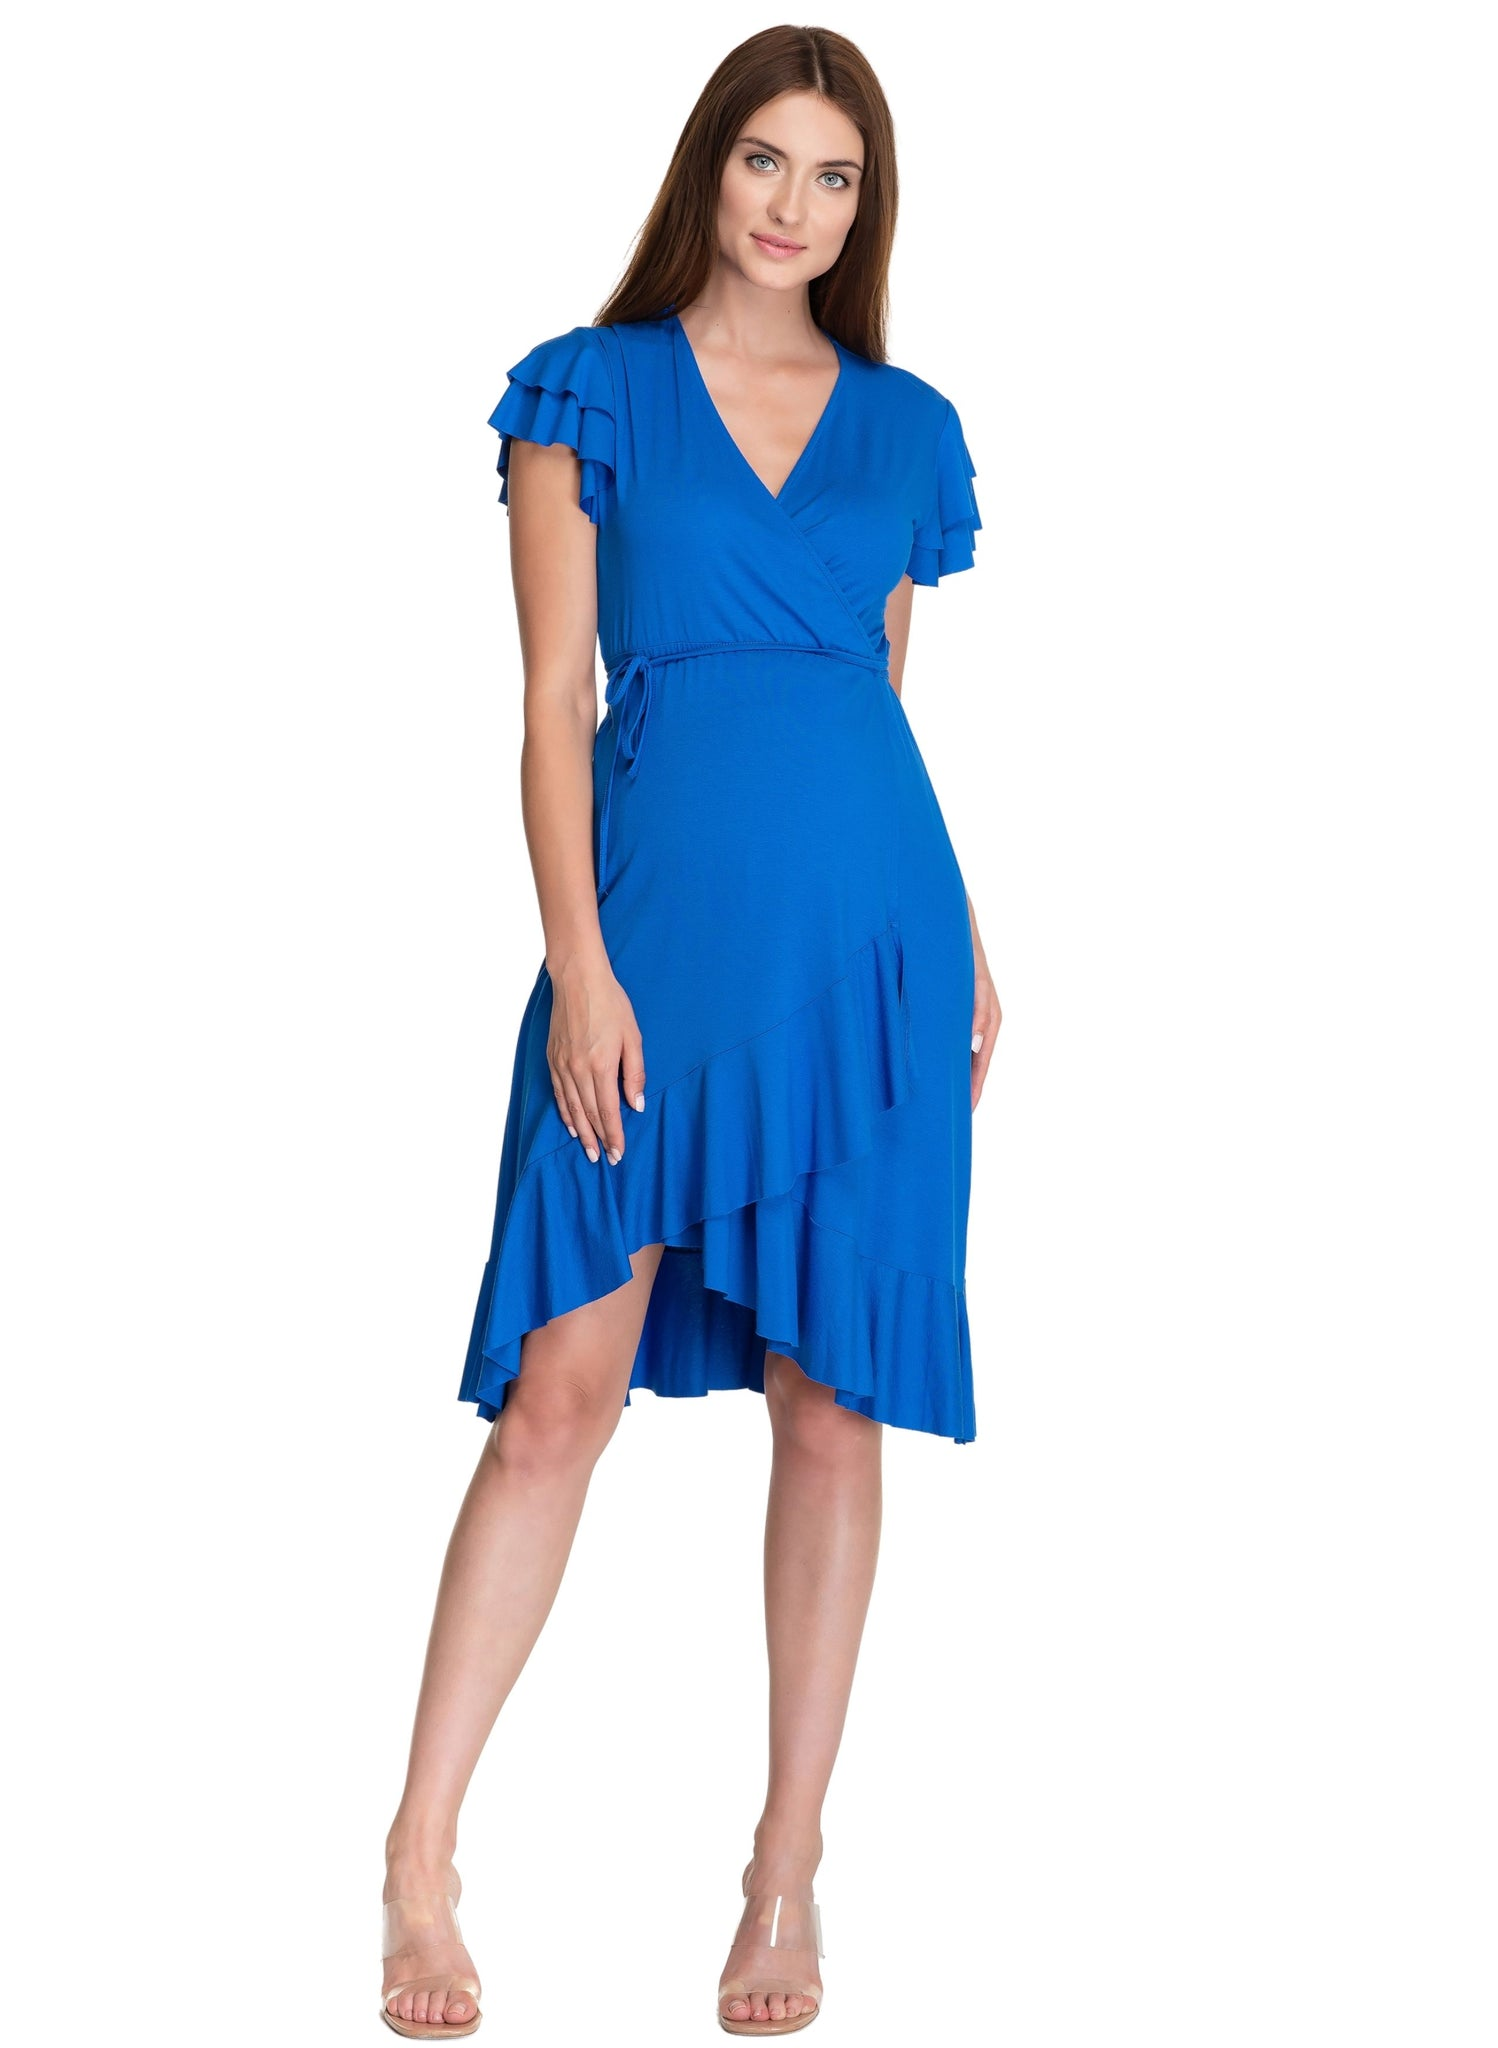 Daisy Maternity Dress - Blue Pacific